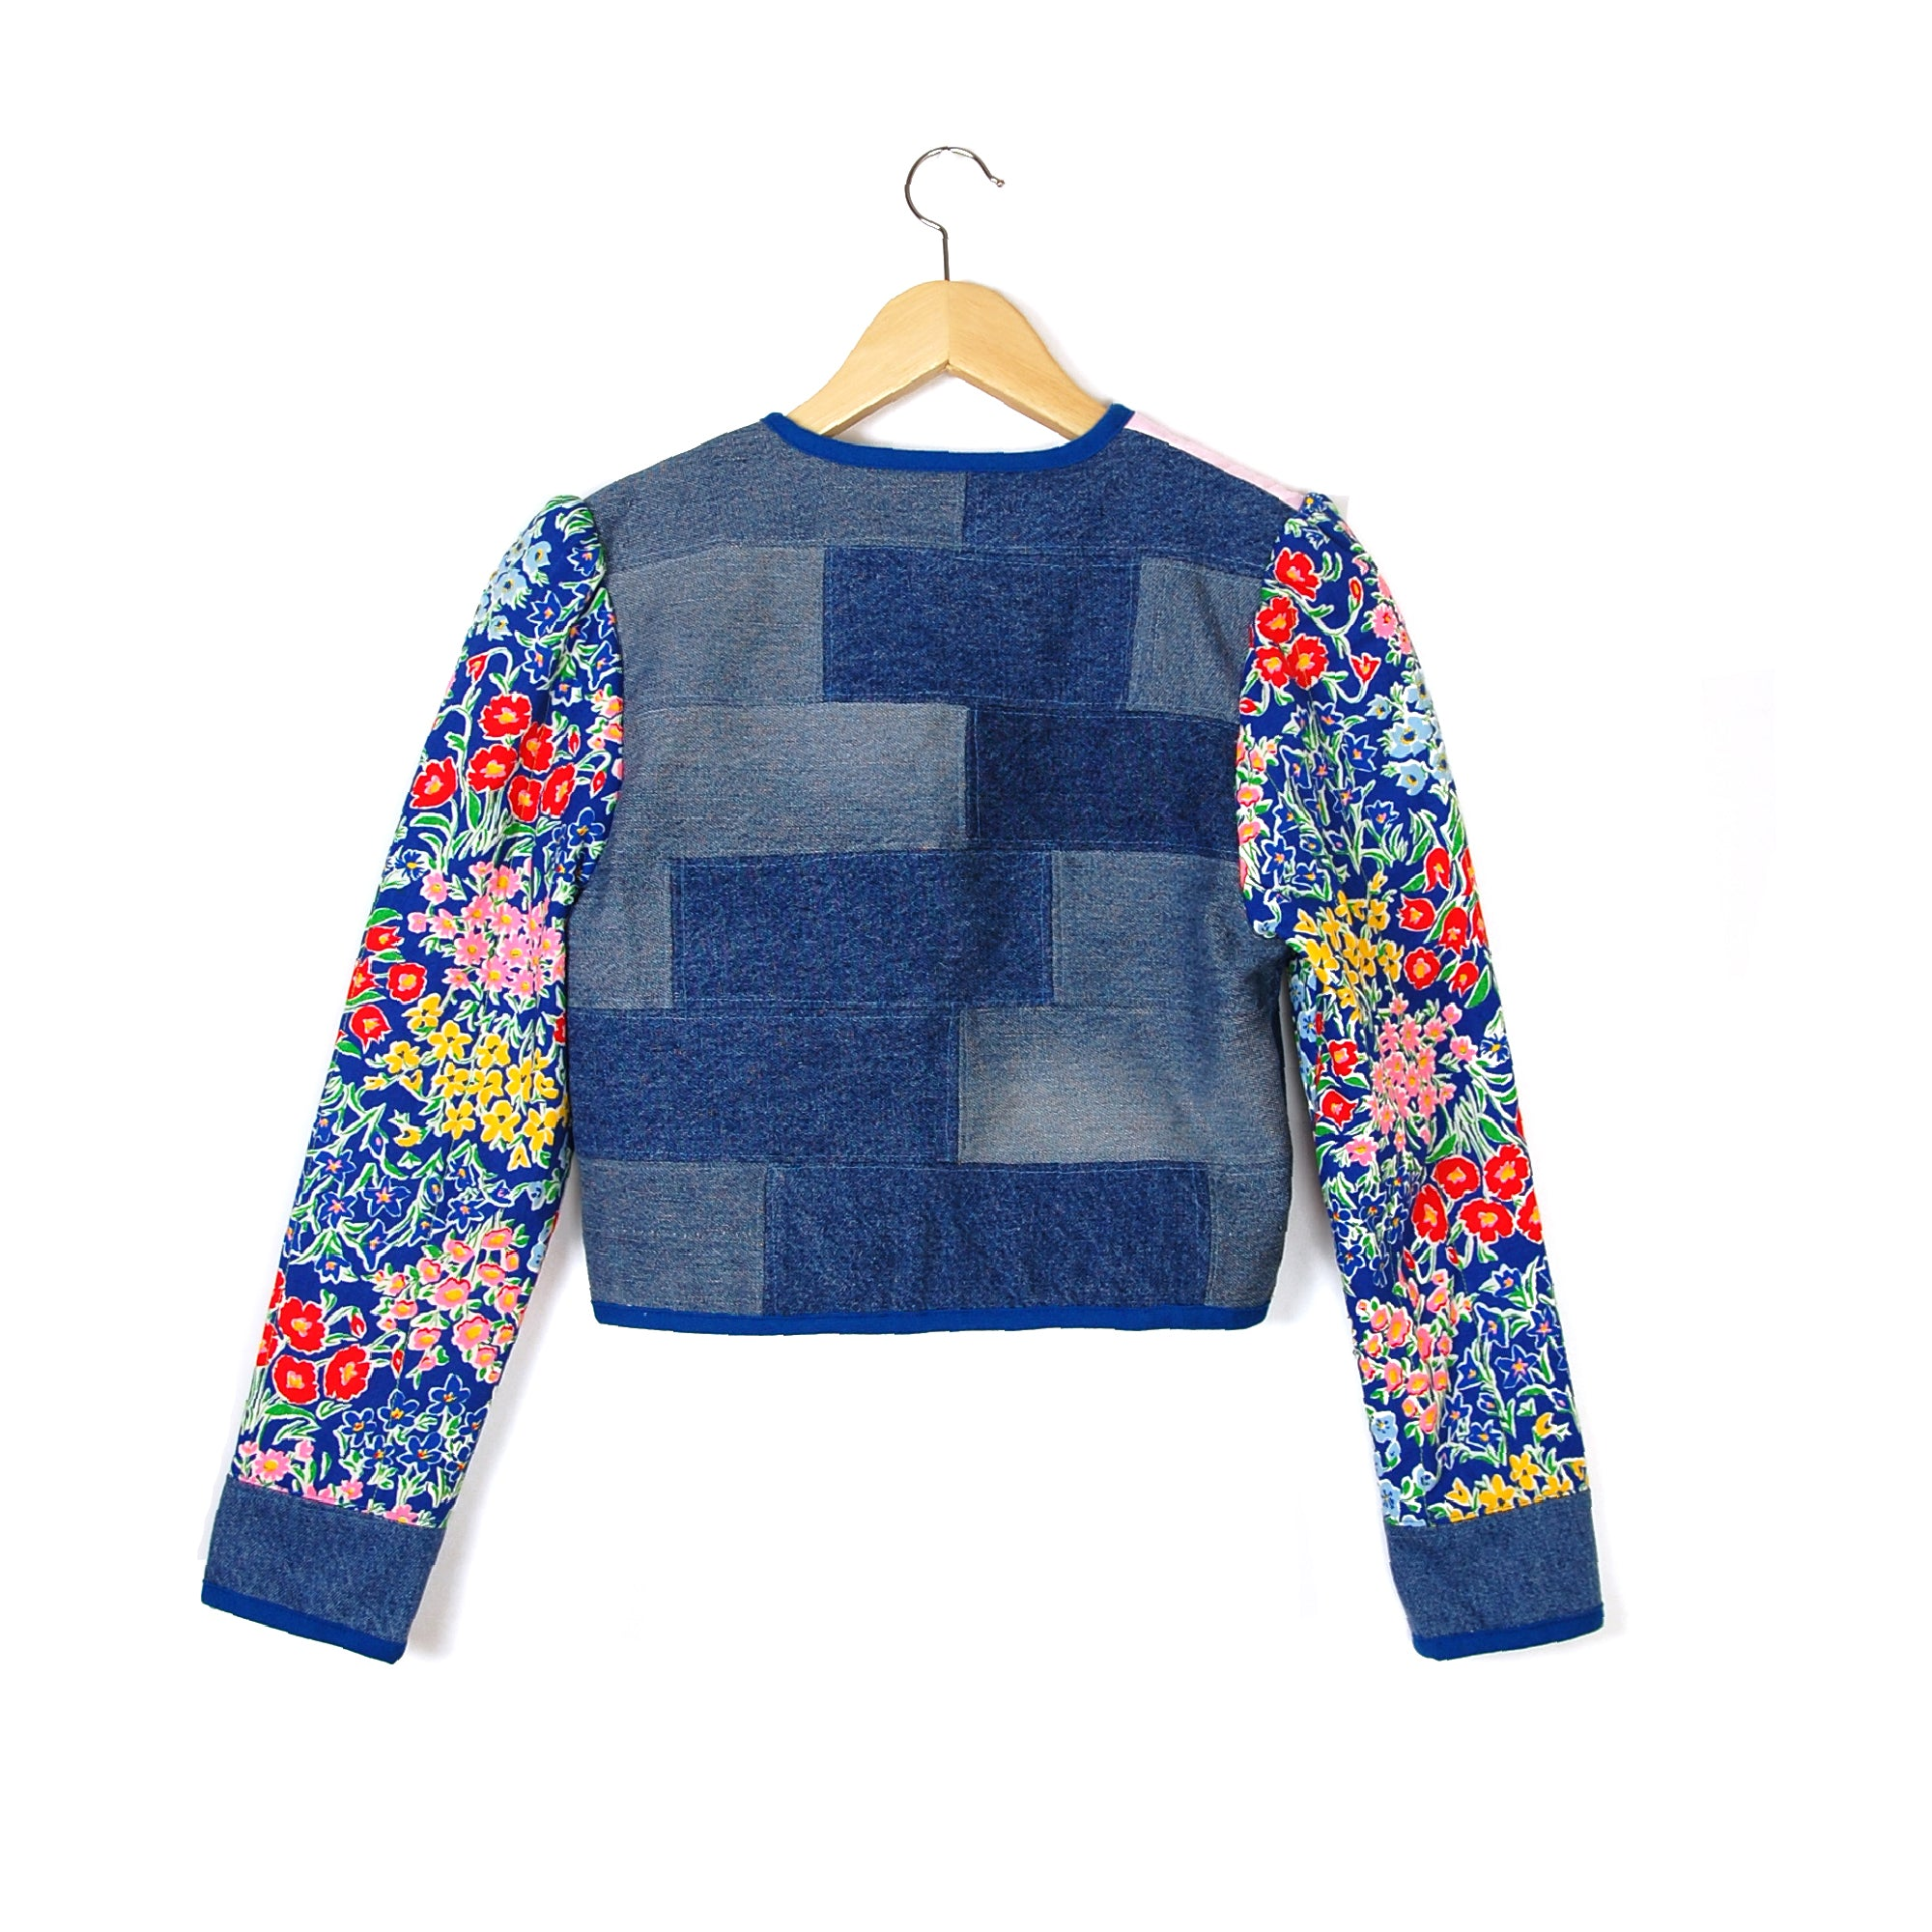 THE LONELY DOLL QUILTED JACKET - Late to the Party